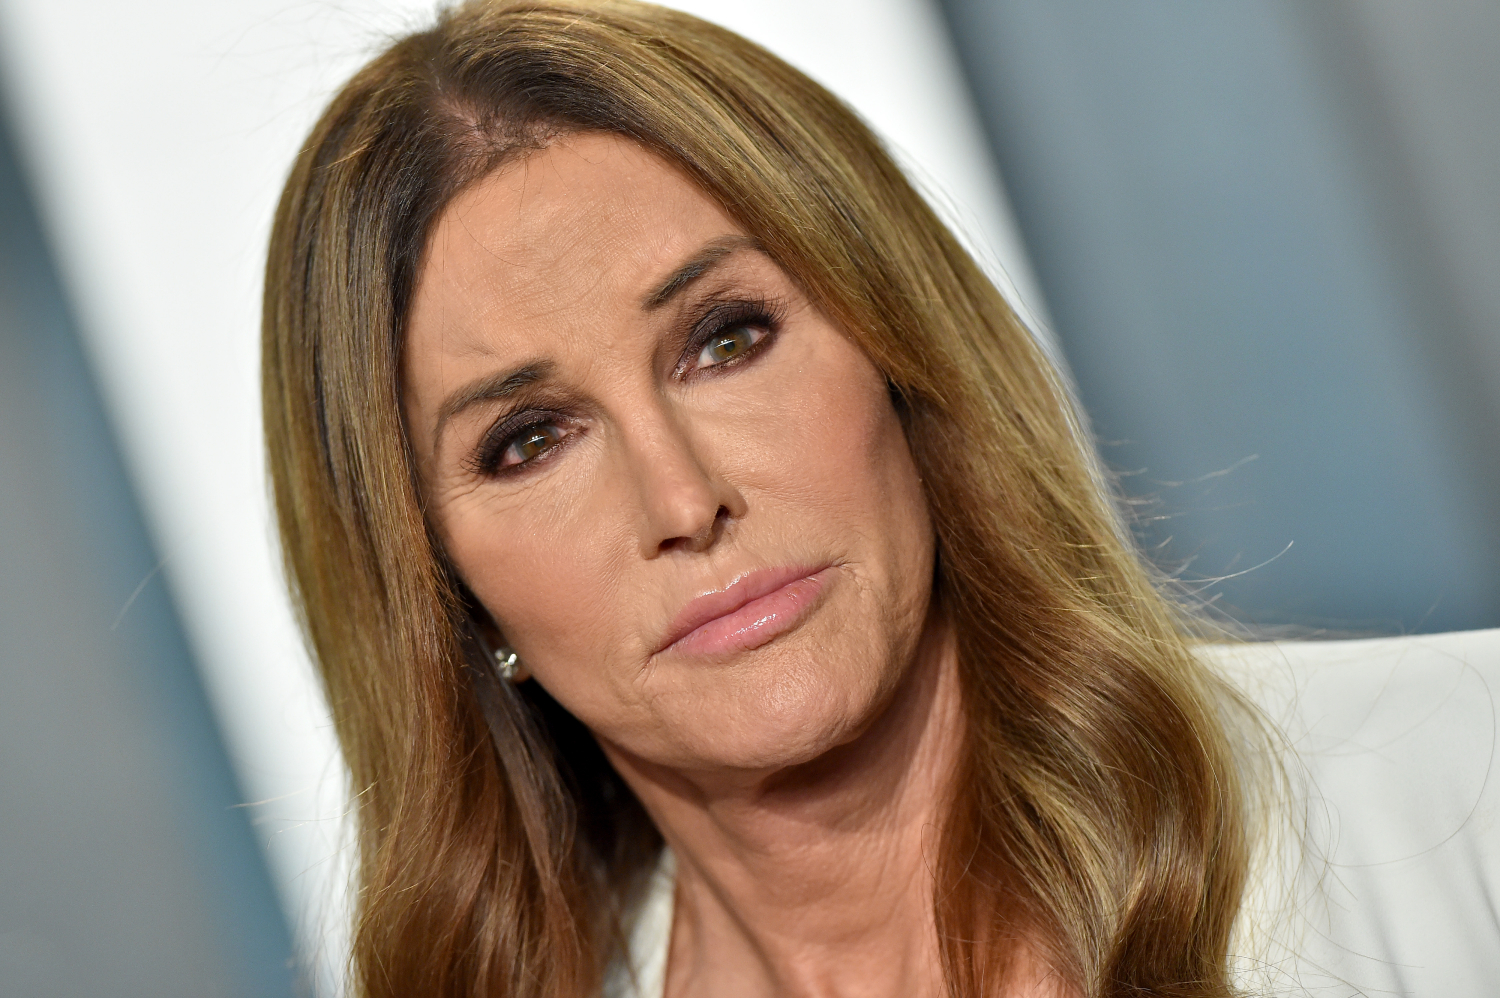 caitlyn-jenner-dragged-on-social-media-after-arguing-against-trans-girls-participating-in-female-sports